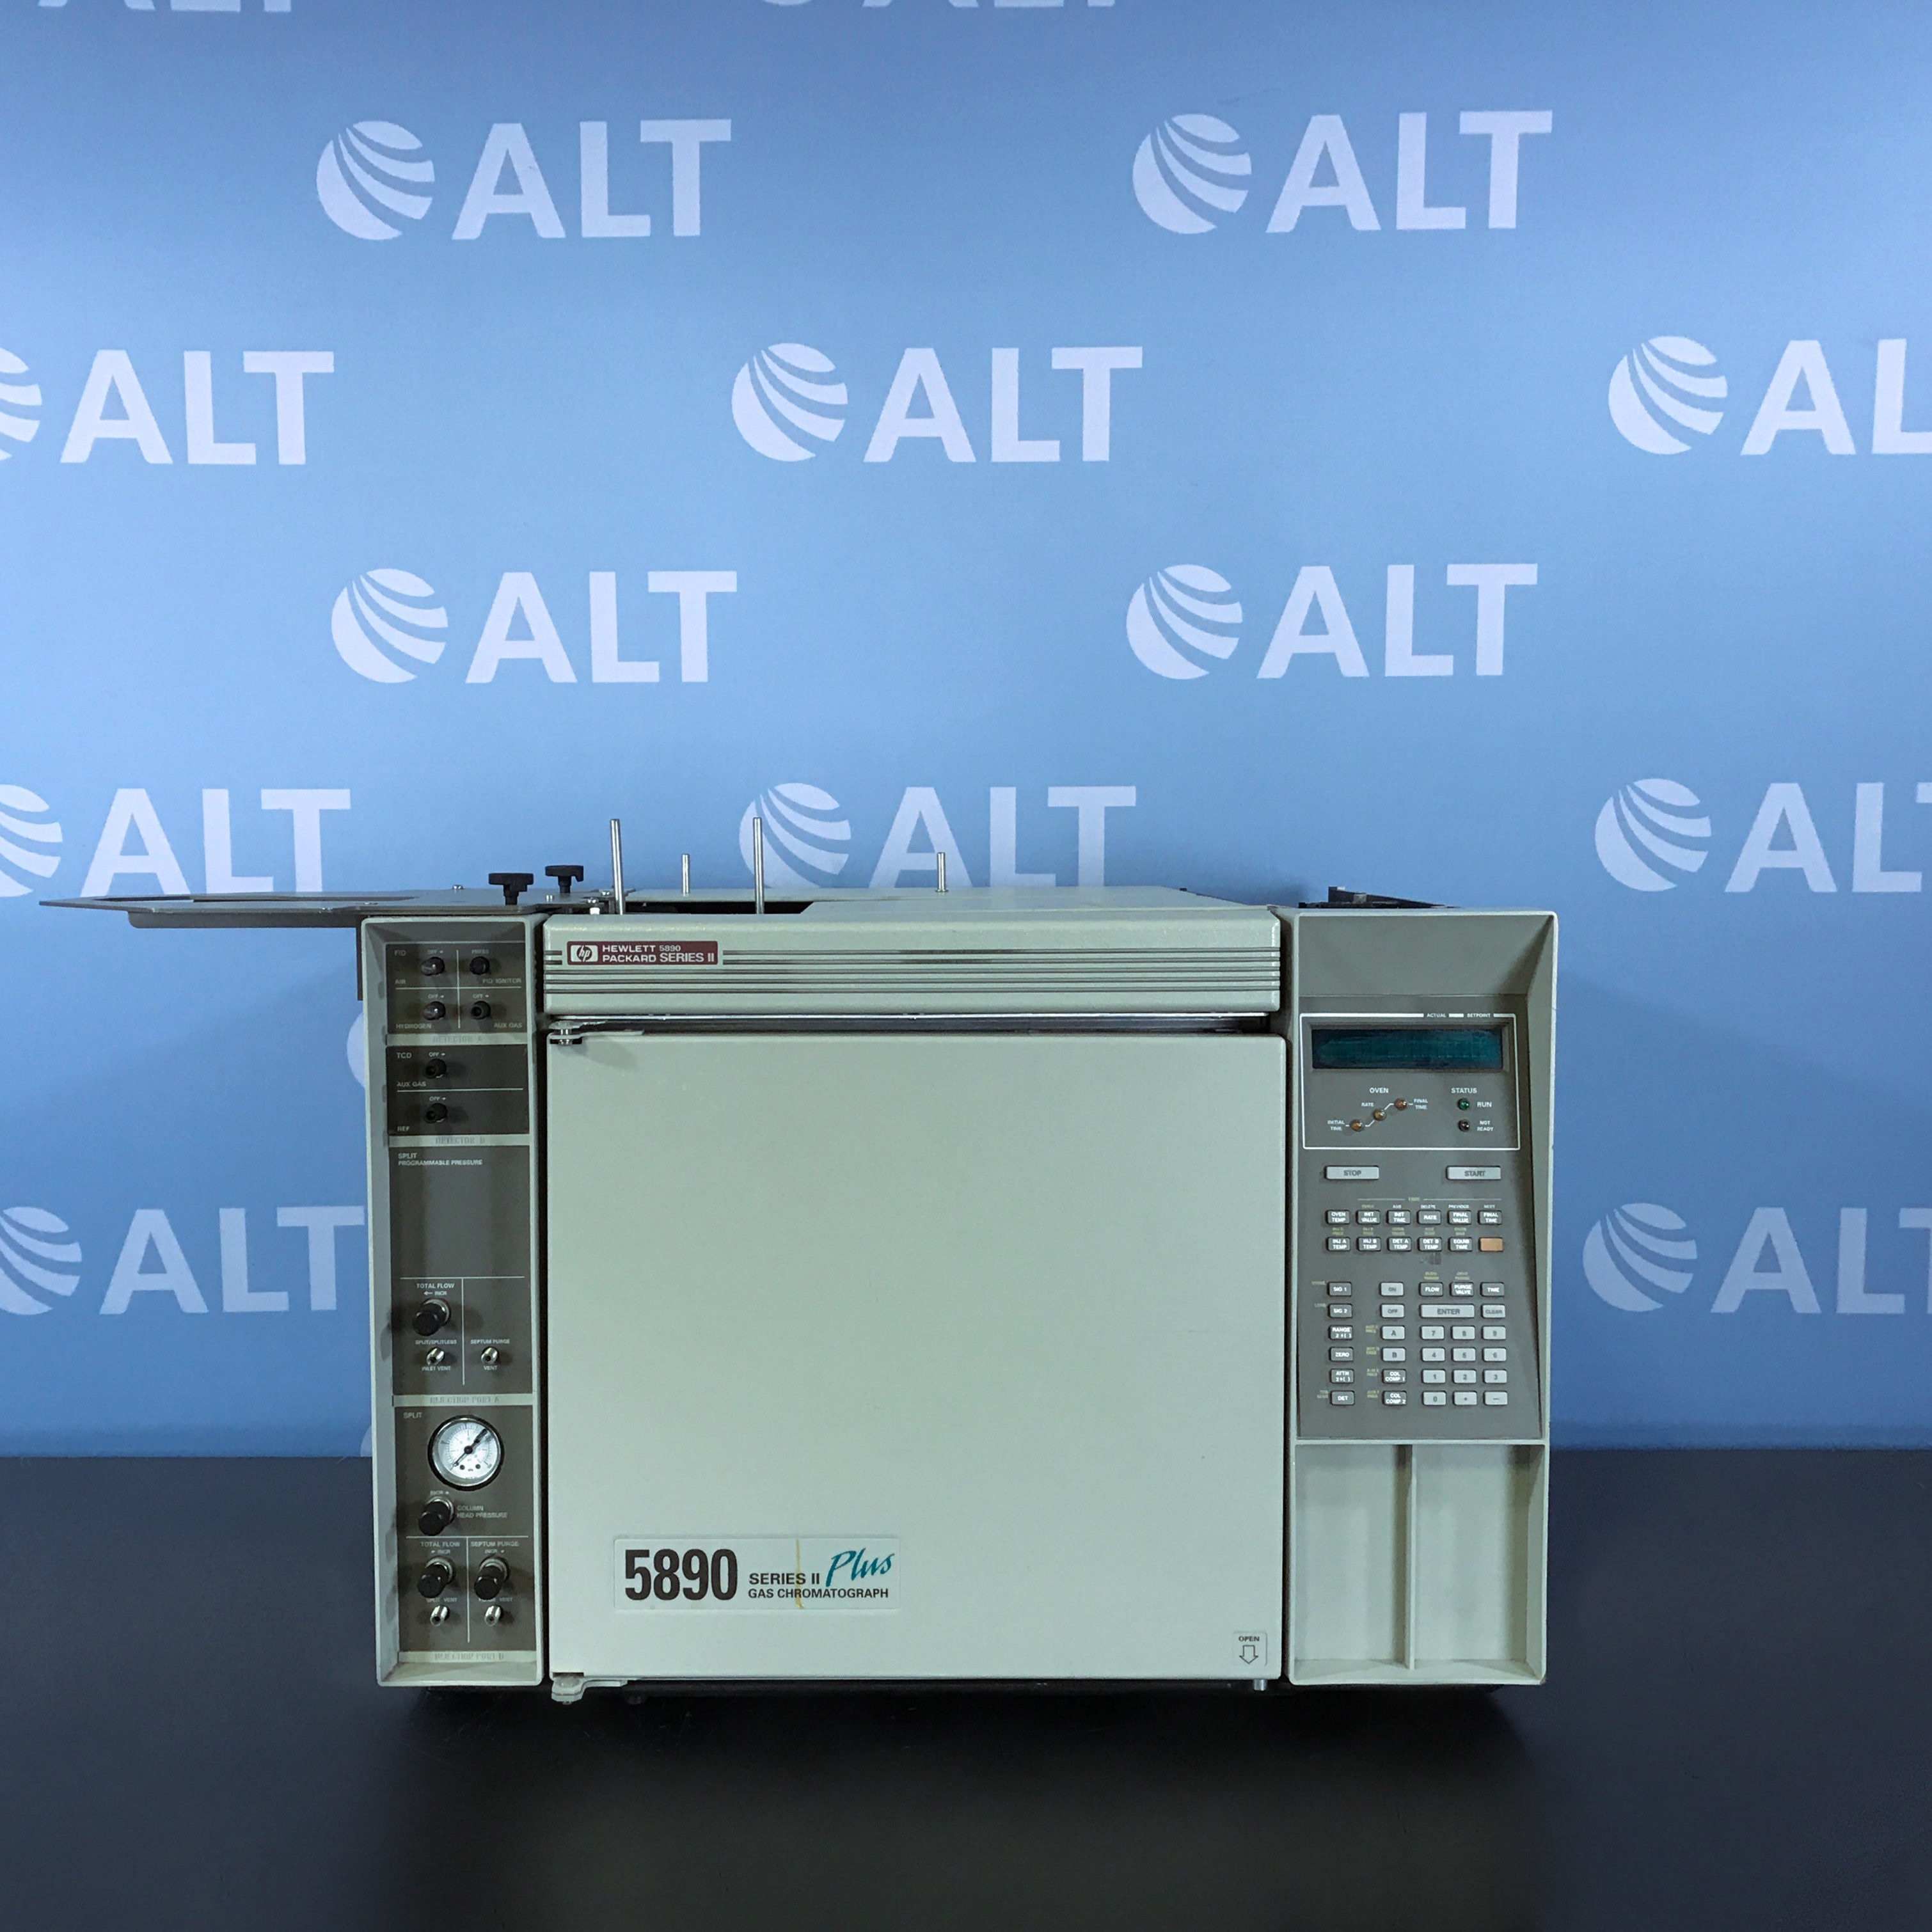 Hewlett Packard HP 5890 Series II Plus Gas Chromatograph (GC) System Image